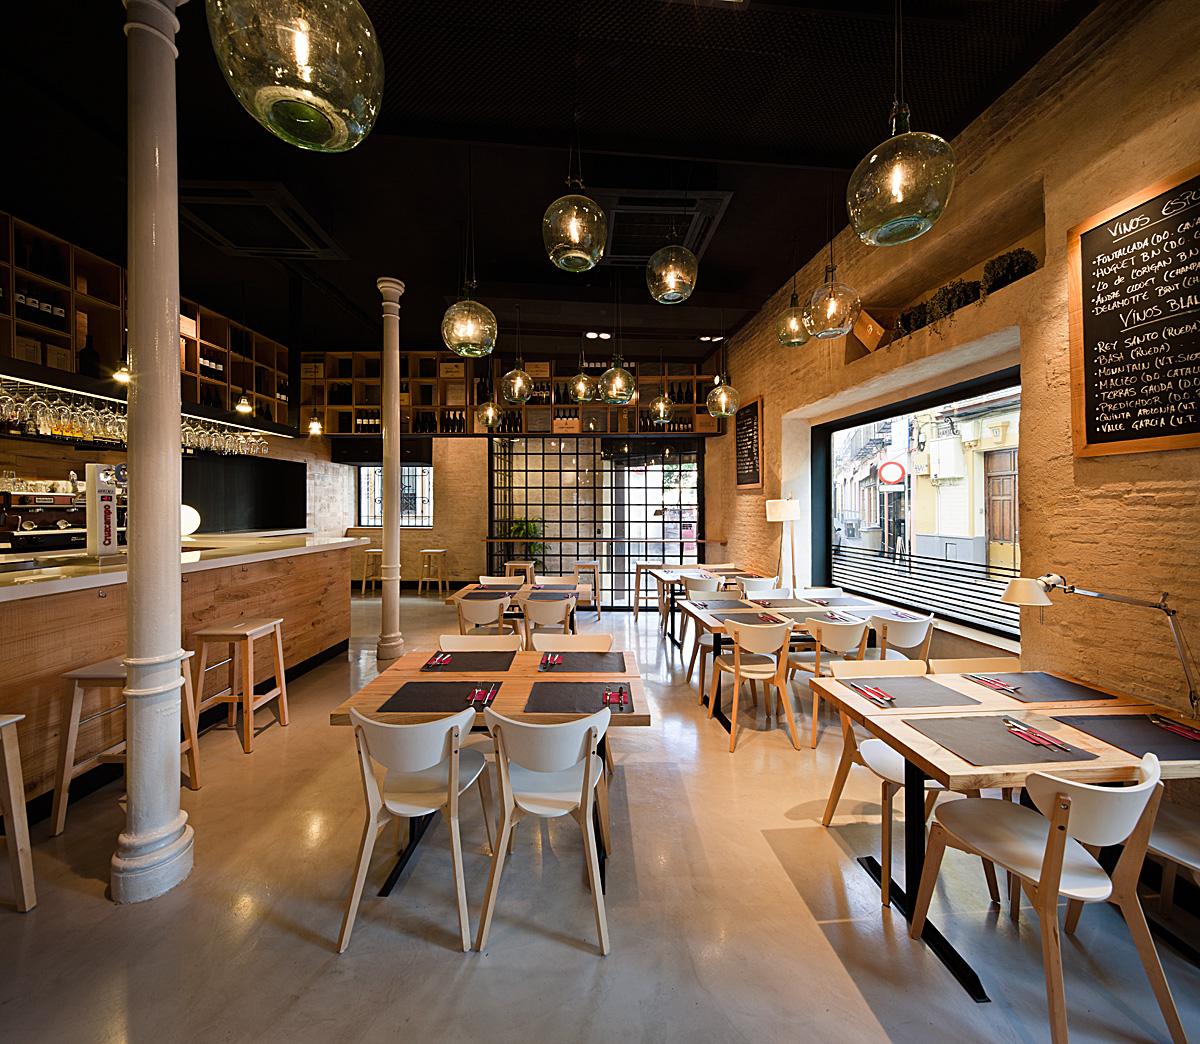 Restaurant Kitchen Interior Design: Restaurant PaCatar / Donaire Arquitectos